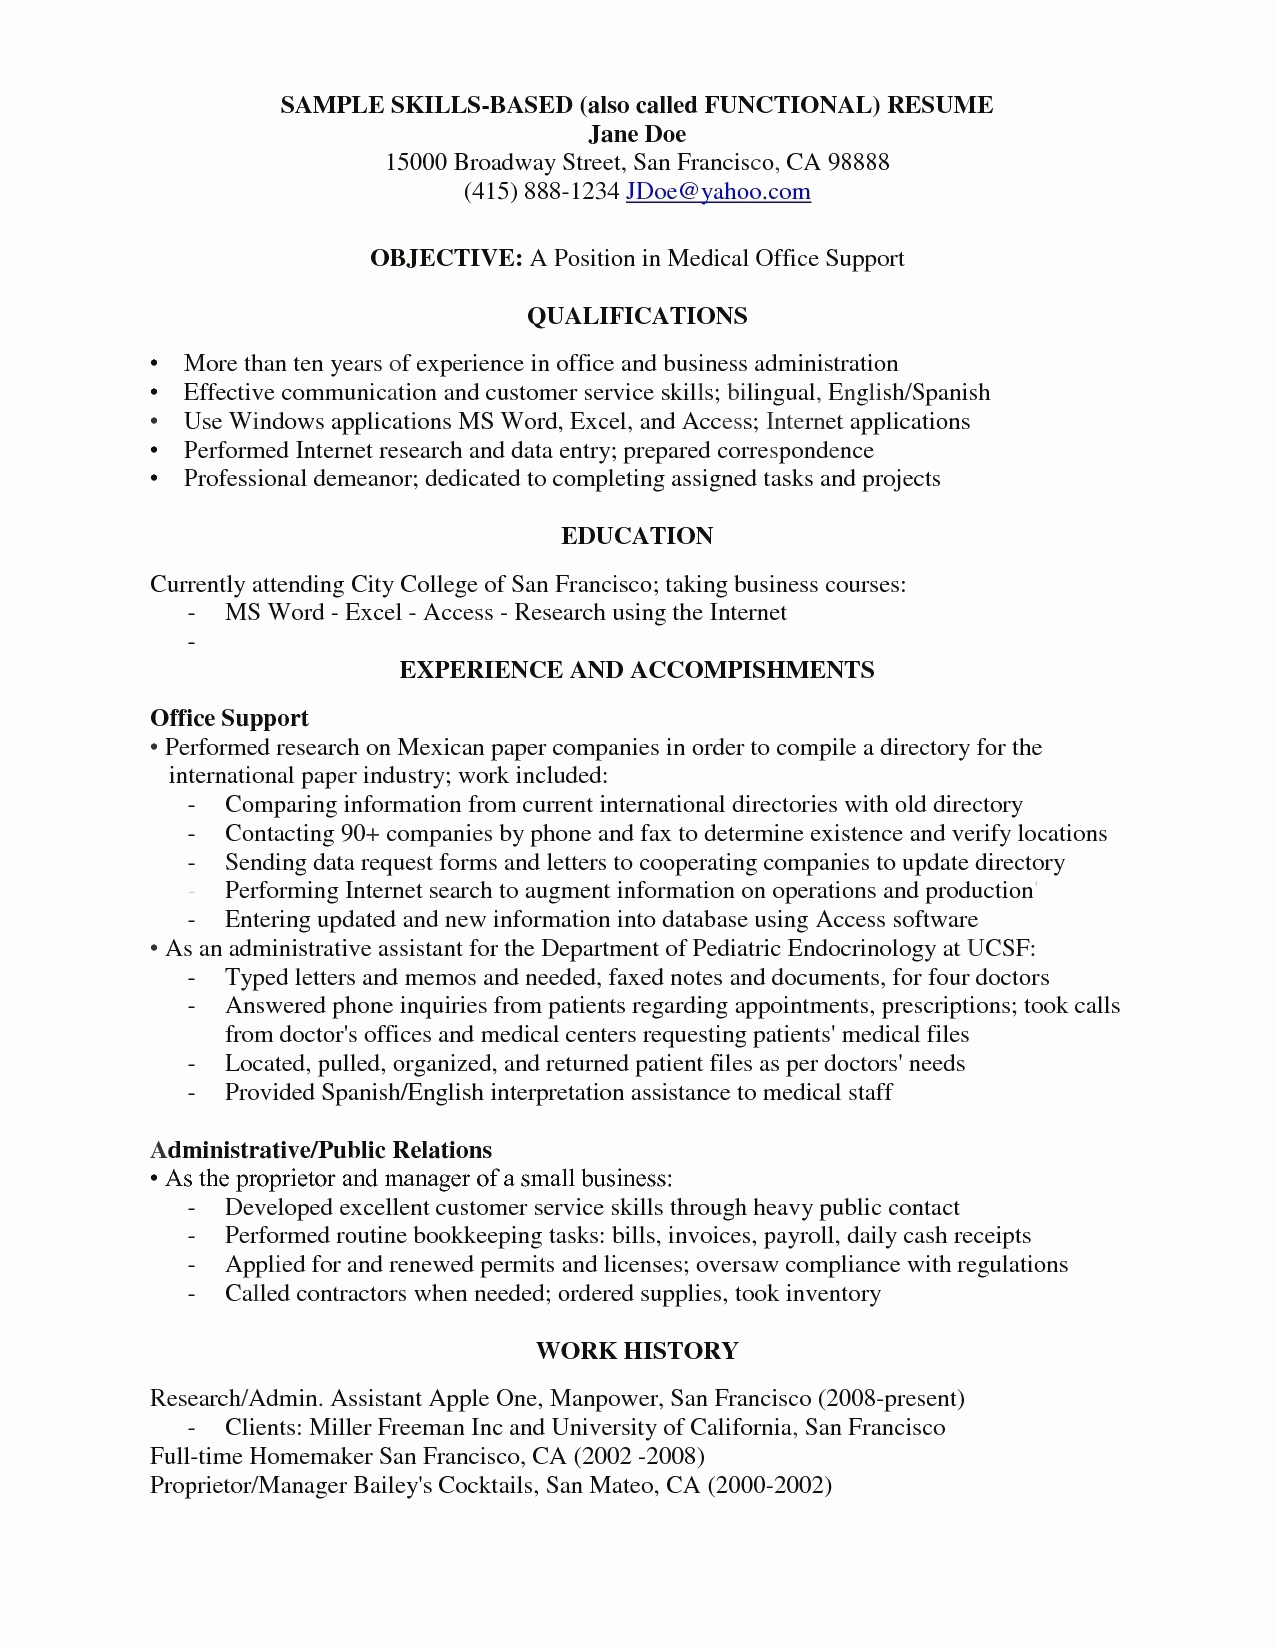 Medical Office Resume - 50 Unique Medical Fice Inventory Template Documents Ideas